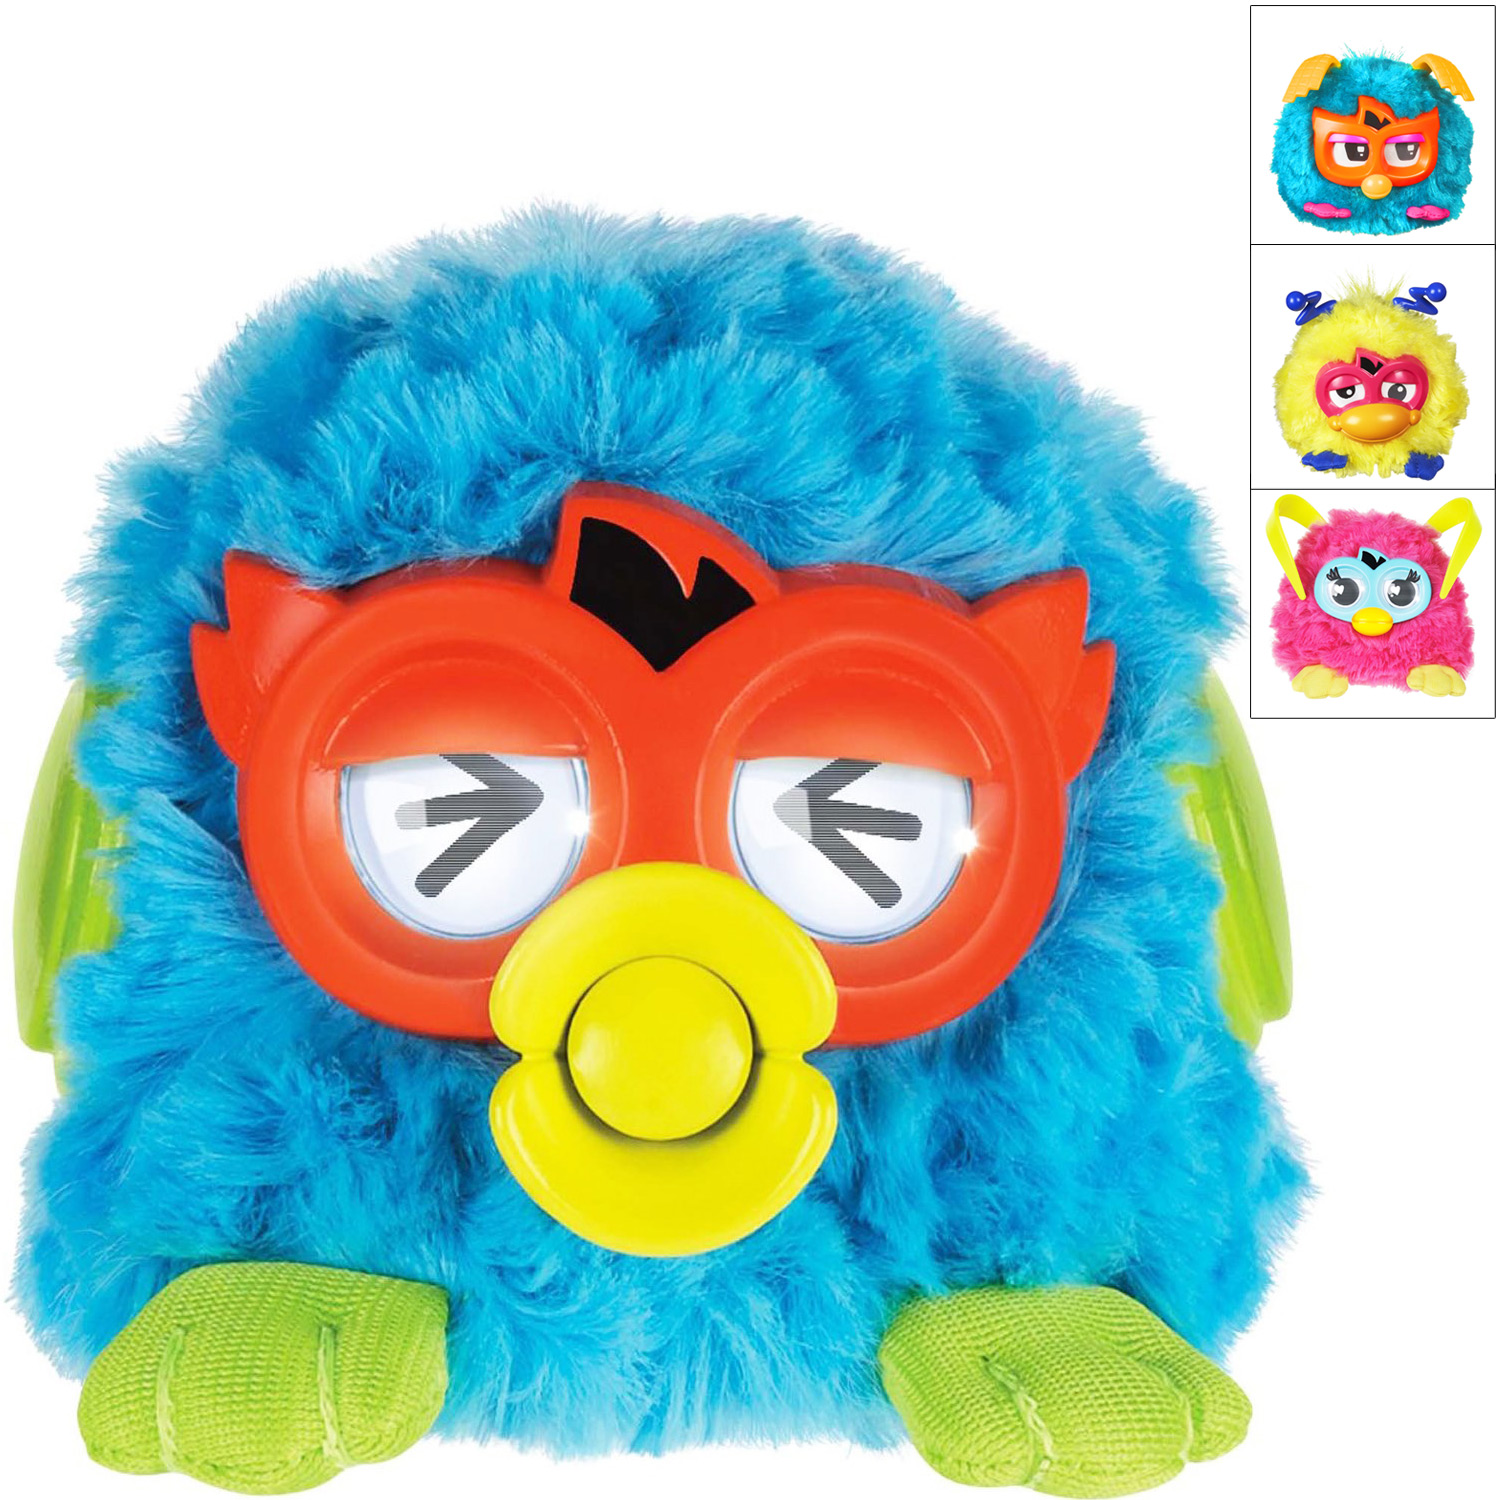 a description of a furby as an interactive pet Download furby and enjoy it on your iphone, ipad, and ipod touch   description  for additional interactive furby fun, use this furby app to  virtually feed.